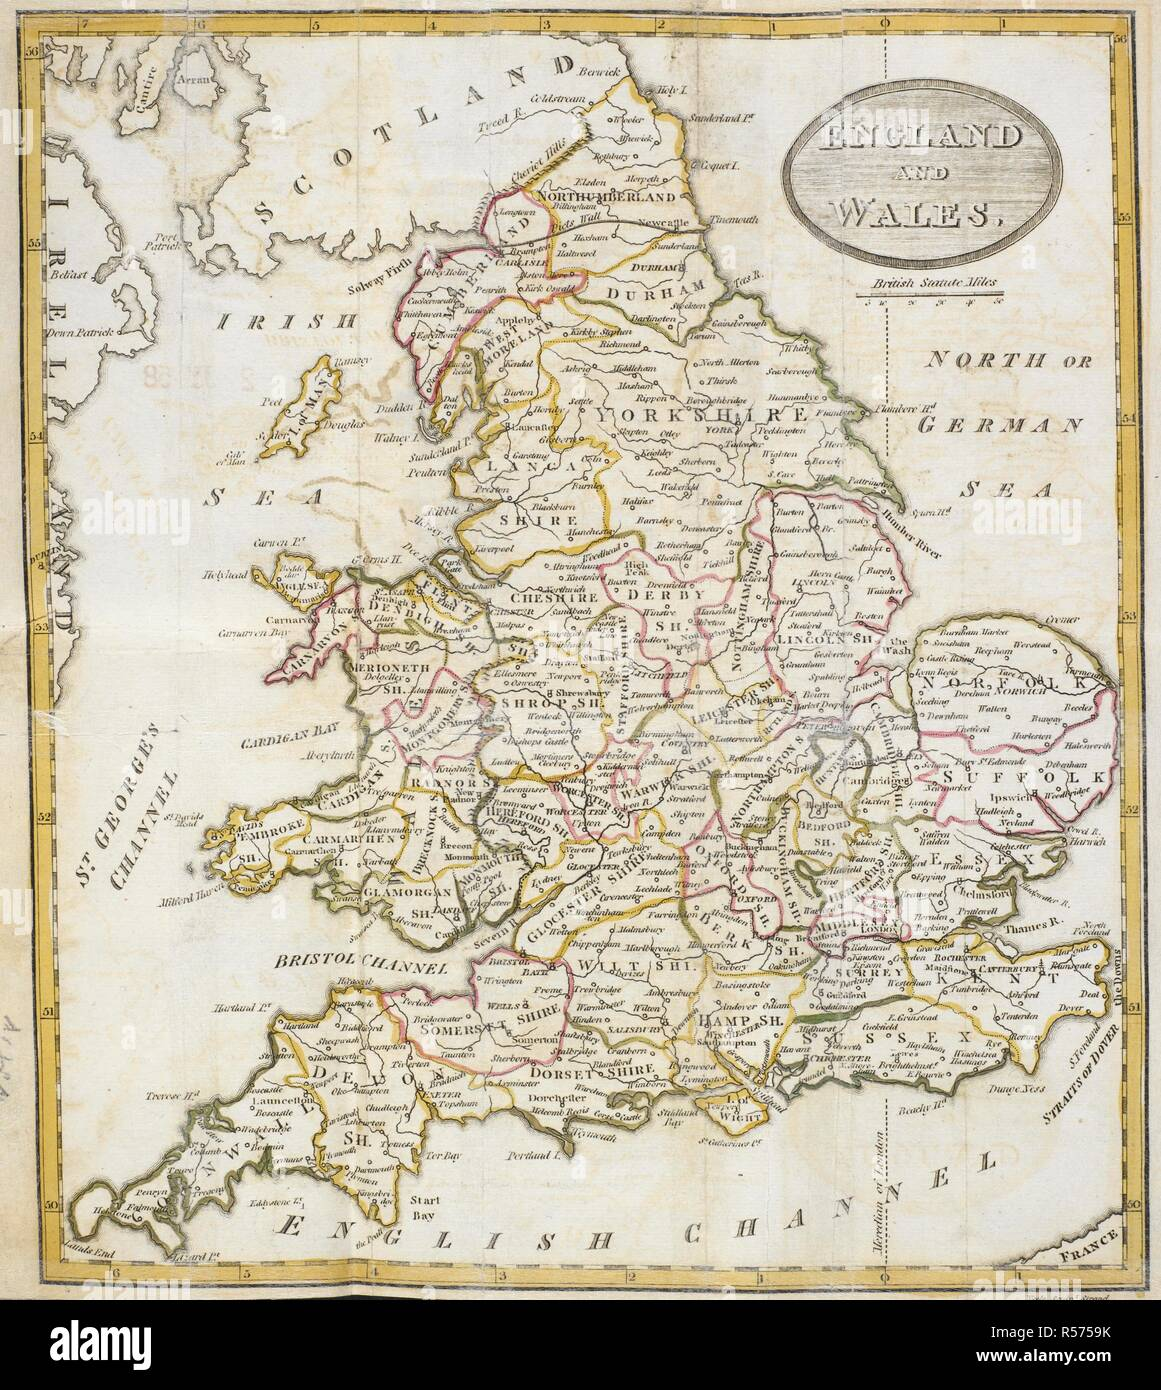 Map Of England 1800.A Map Of England And Wales Prospects And Observations On A Tour In